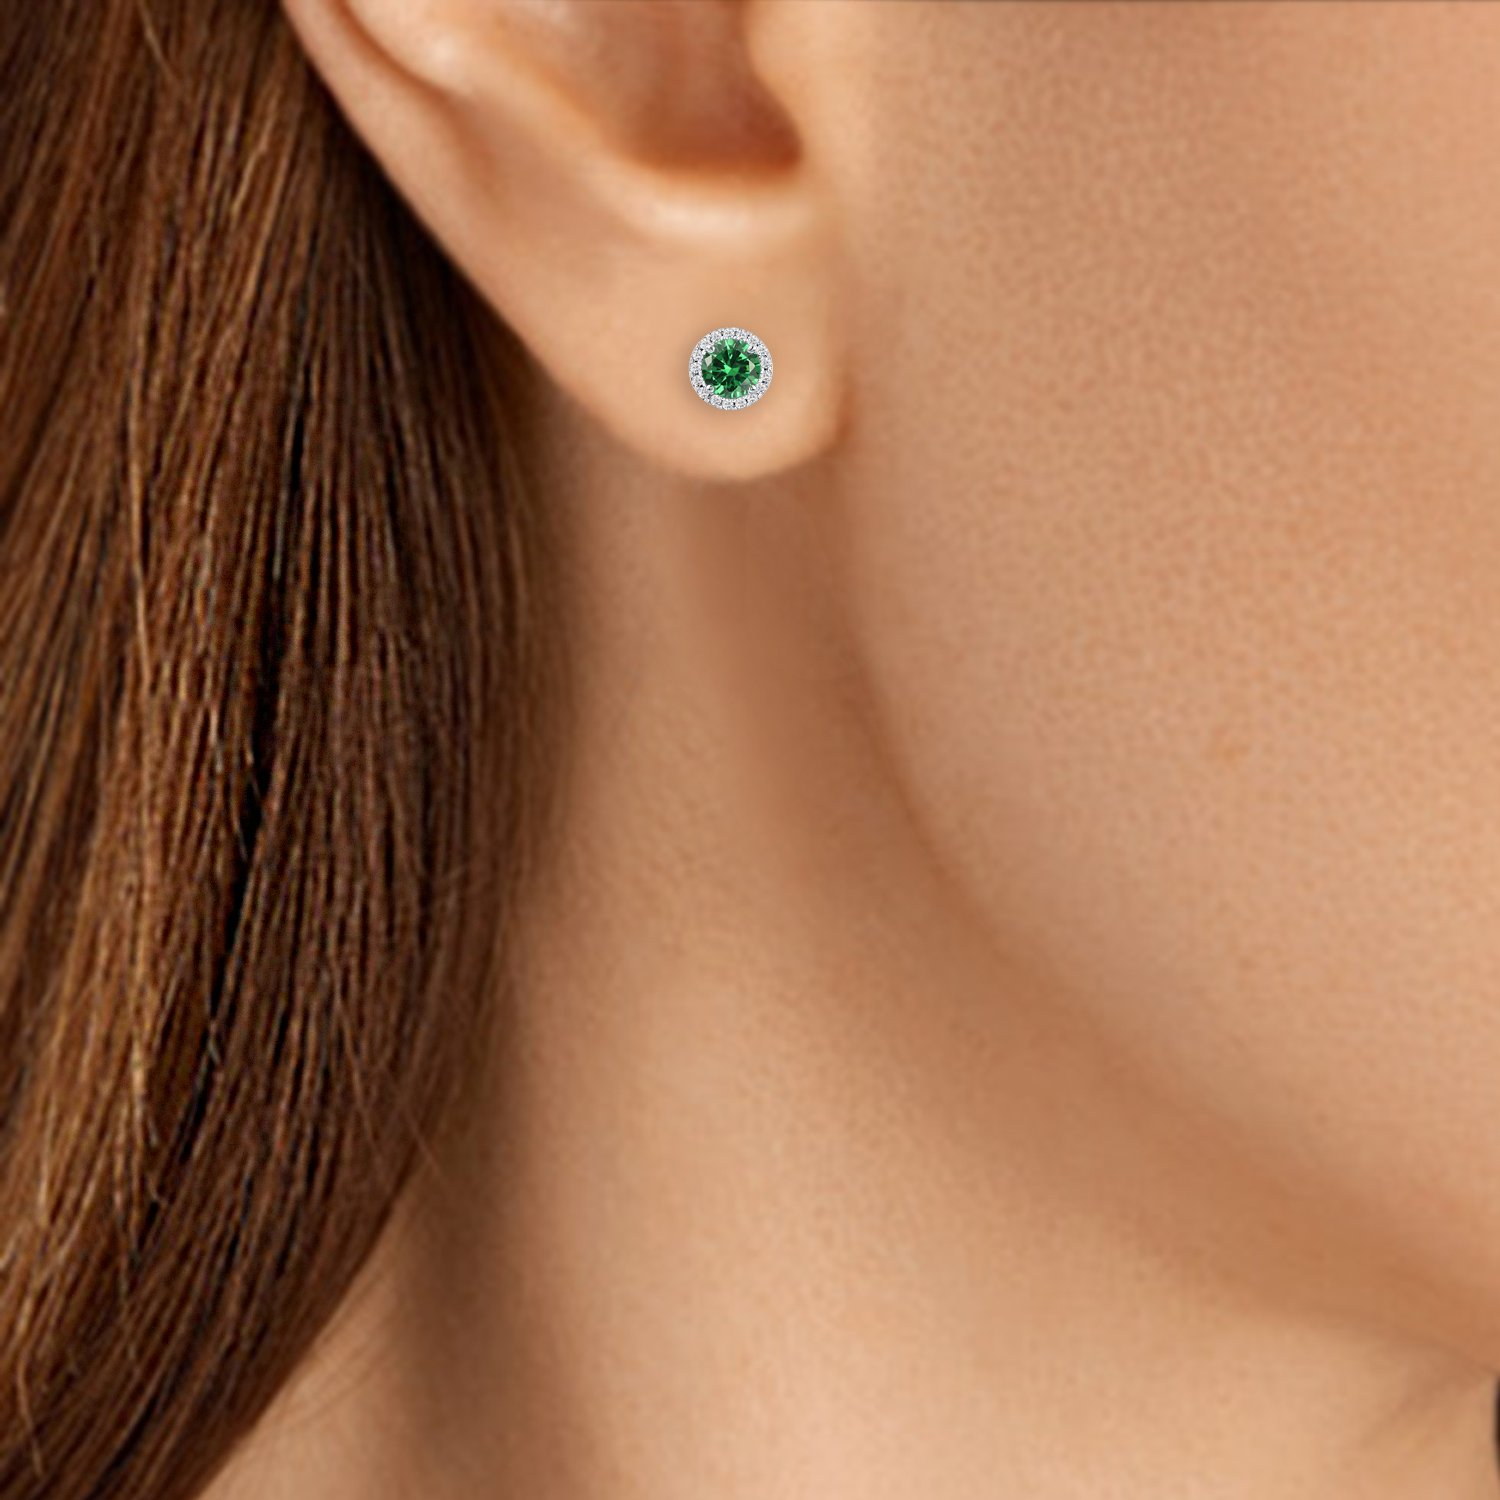 Craft On Jewelry 14k Silver Plated Simulated Emerald /& White CZ Halo Round Stud Earrings for Women Girls Teen Perfect Gift Idea